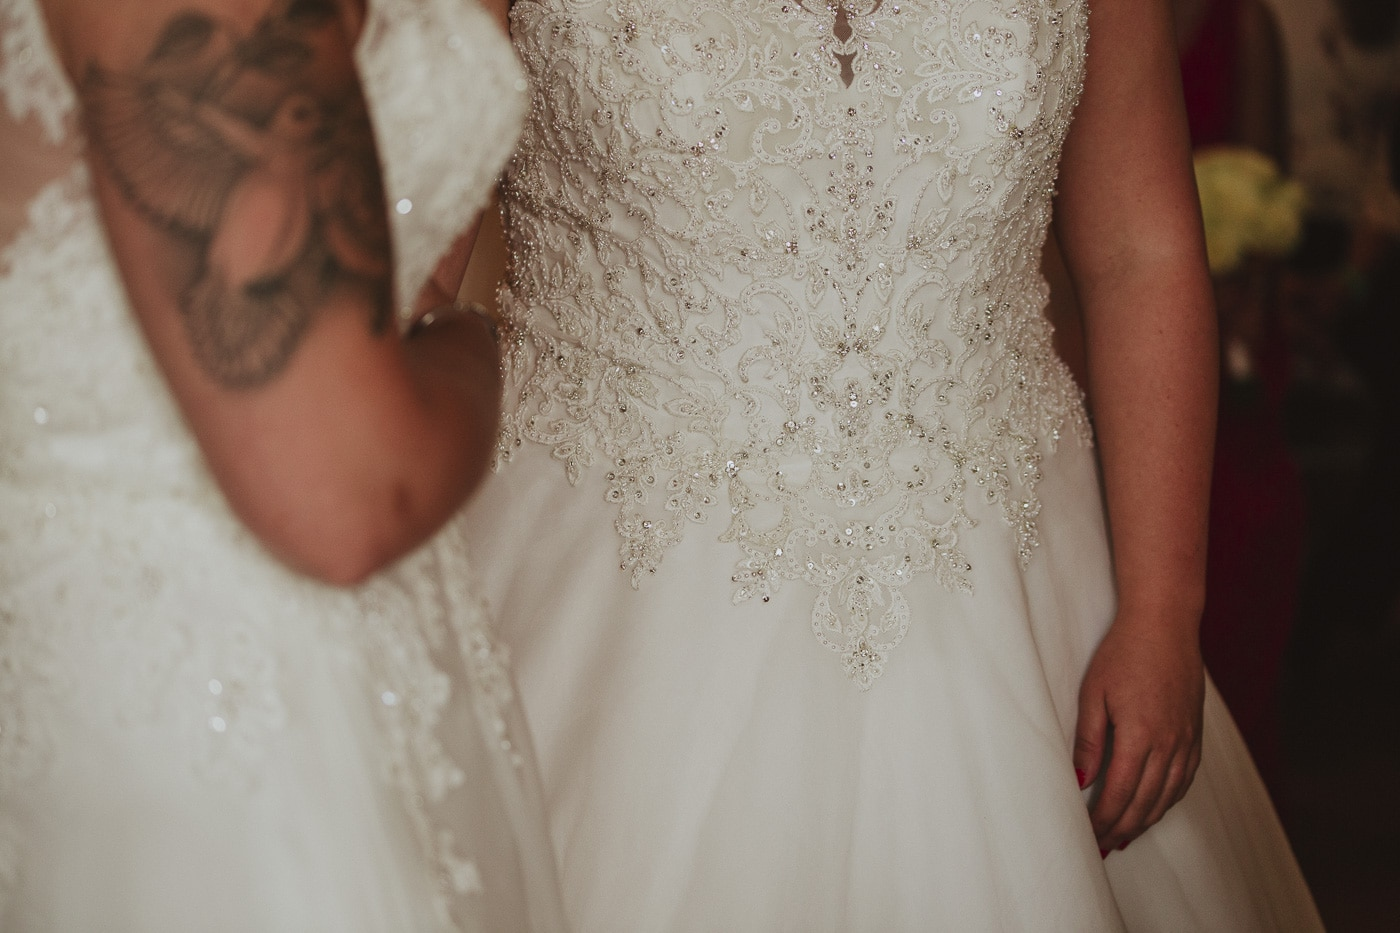 detail of wedding dress for wedding by Joshua Wyborn photography